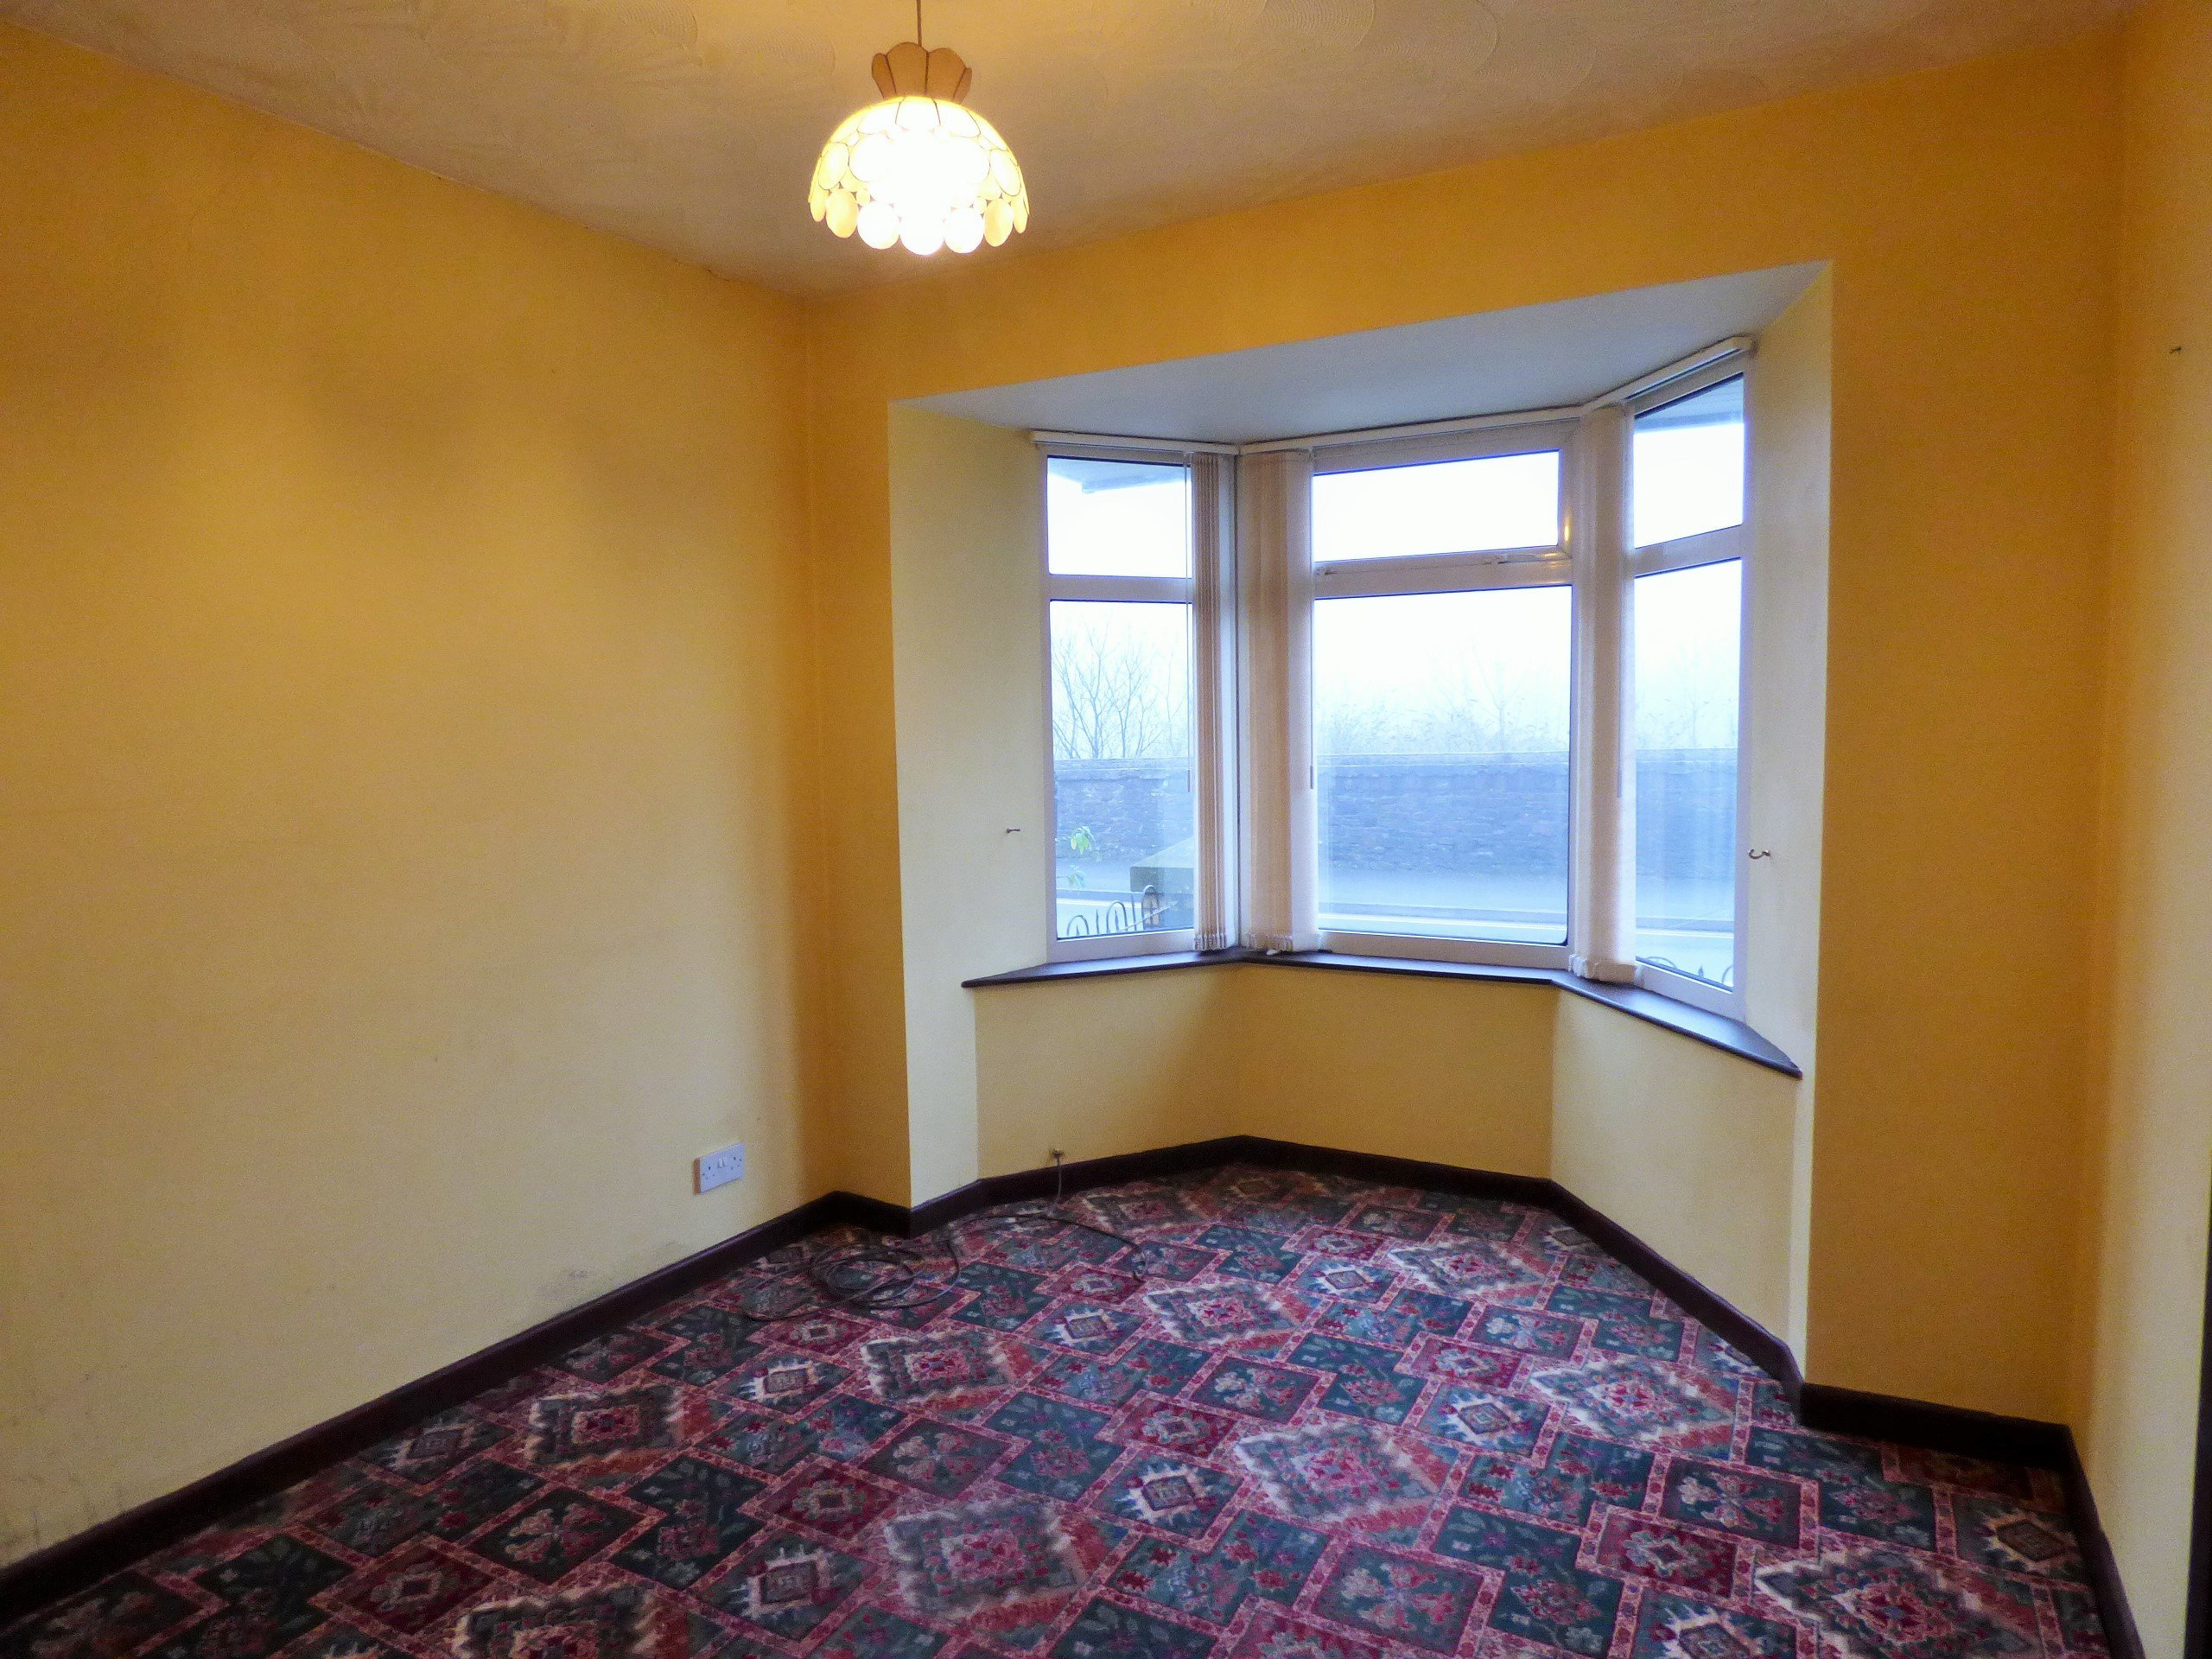 Wisemove Property for sale. Tanybryn House, Pontycymmer. Lounge